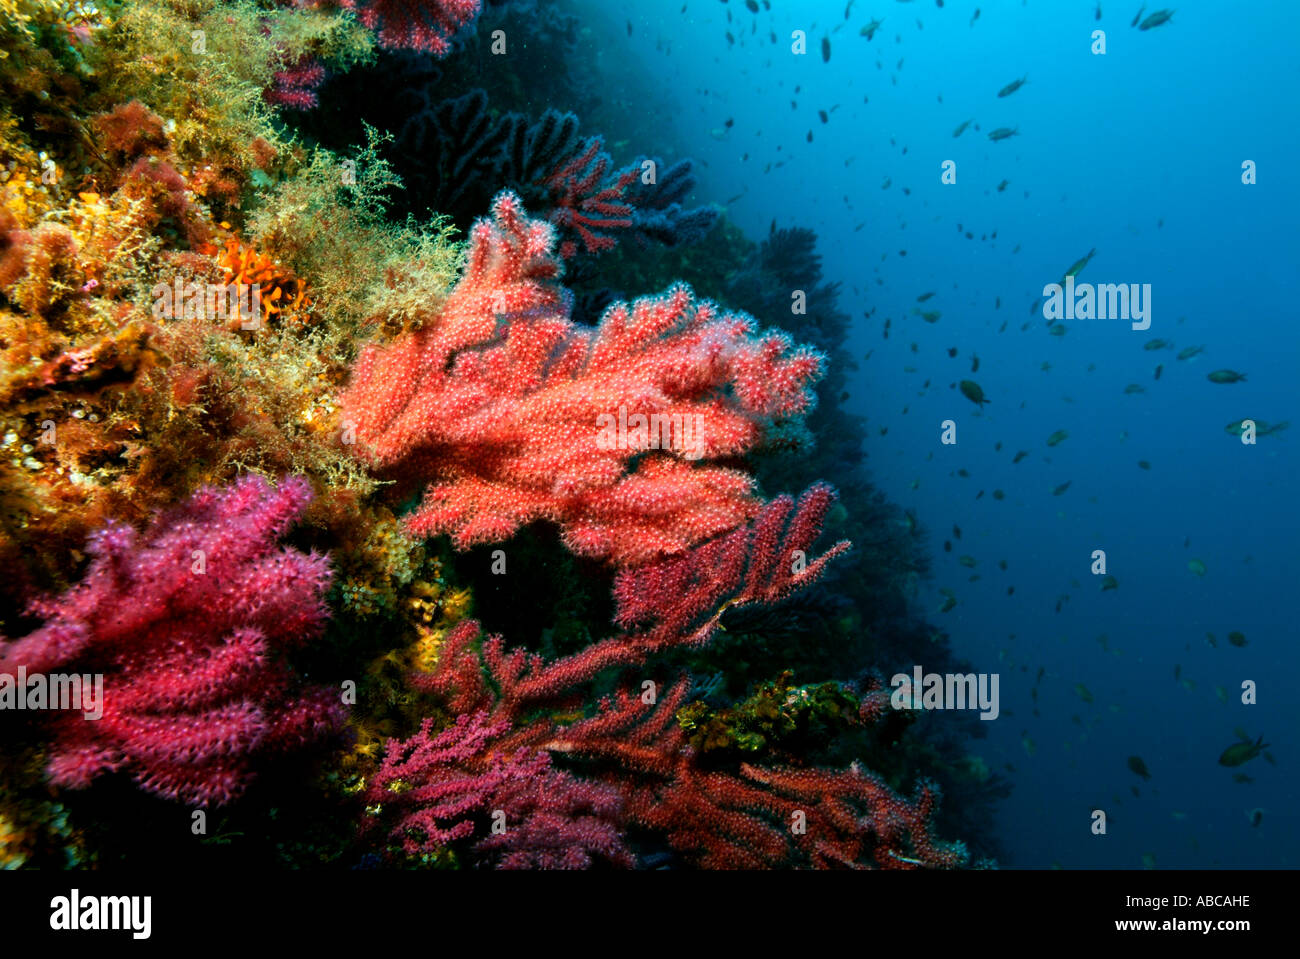 Gorgones rouges (Alcyonium palmatum) sur un récif de corail Photo Stock